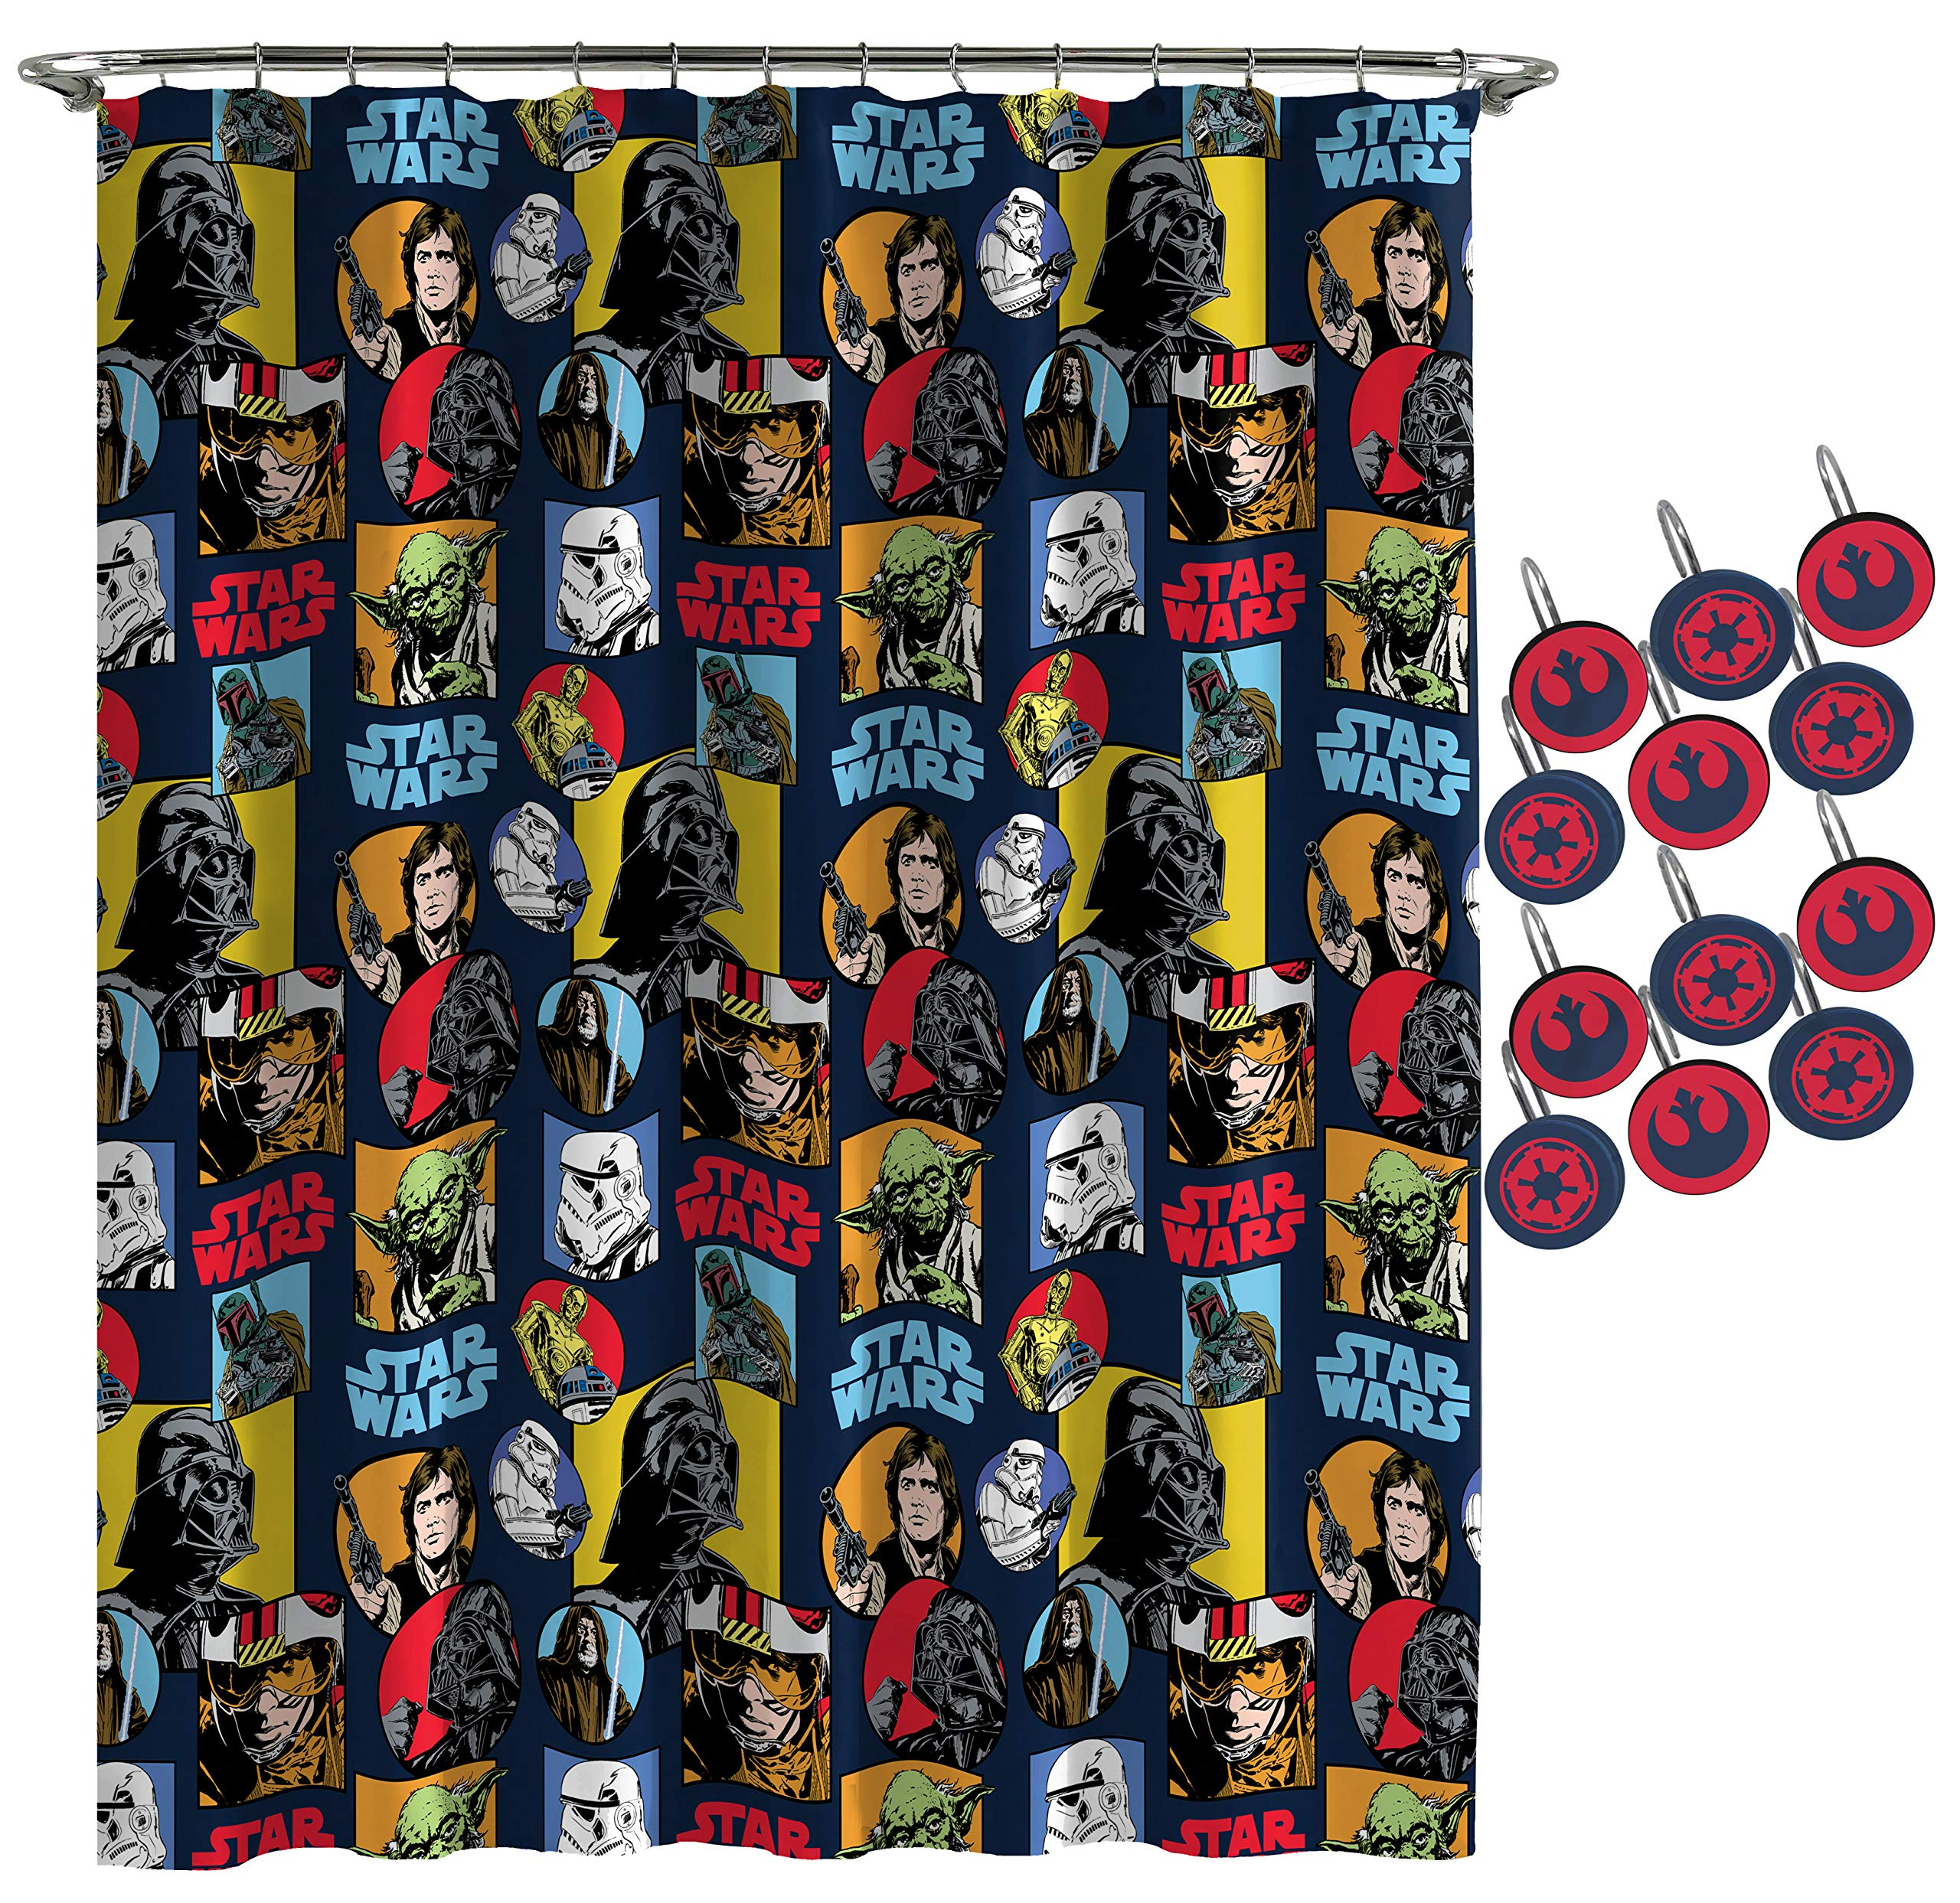 Jay Franco Star Wars Galactic Grid Shower Curtain & 12-Piece Hook Set & Easy Use - Kids Bath Set Features Darth Vader & Han Solo (Official Star Wars Product)